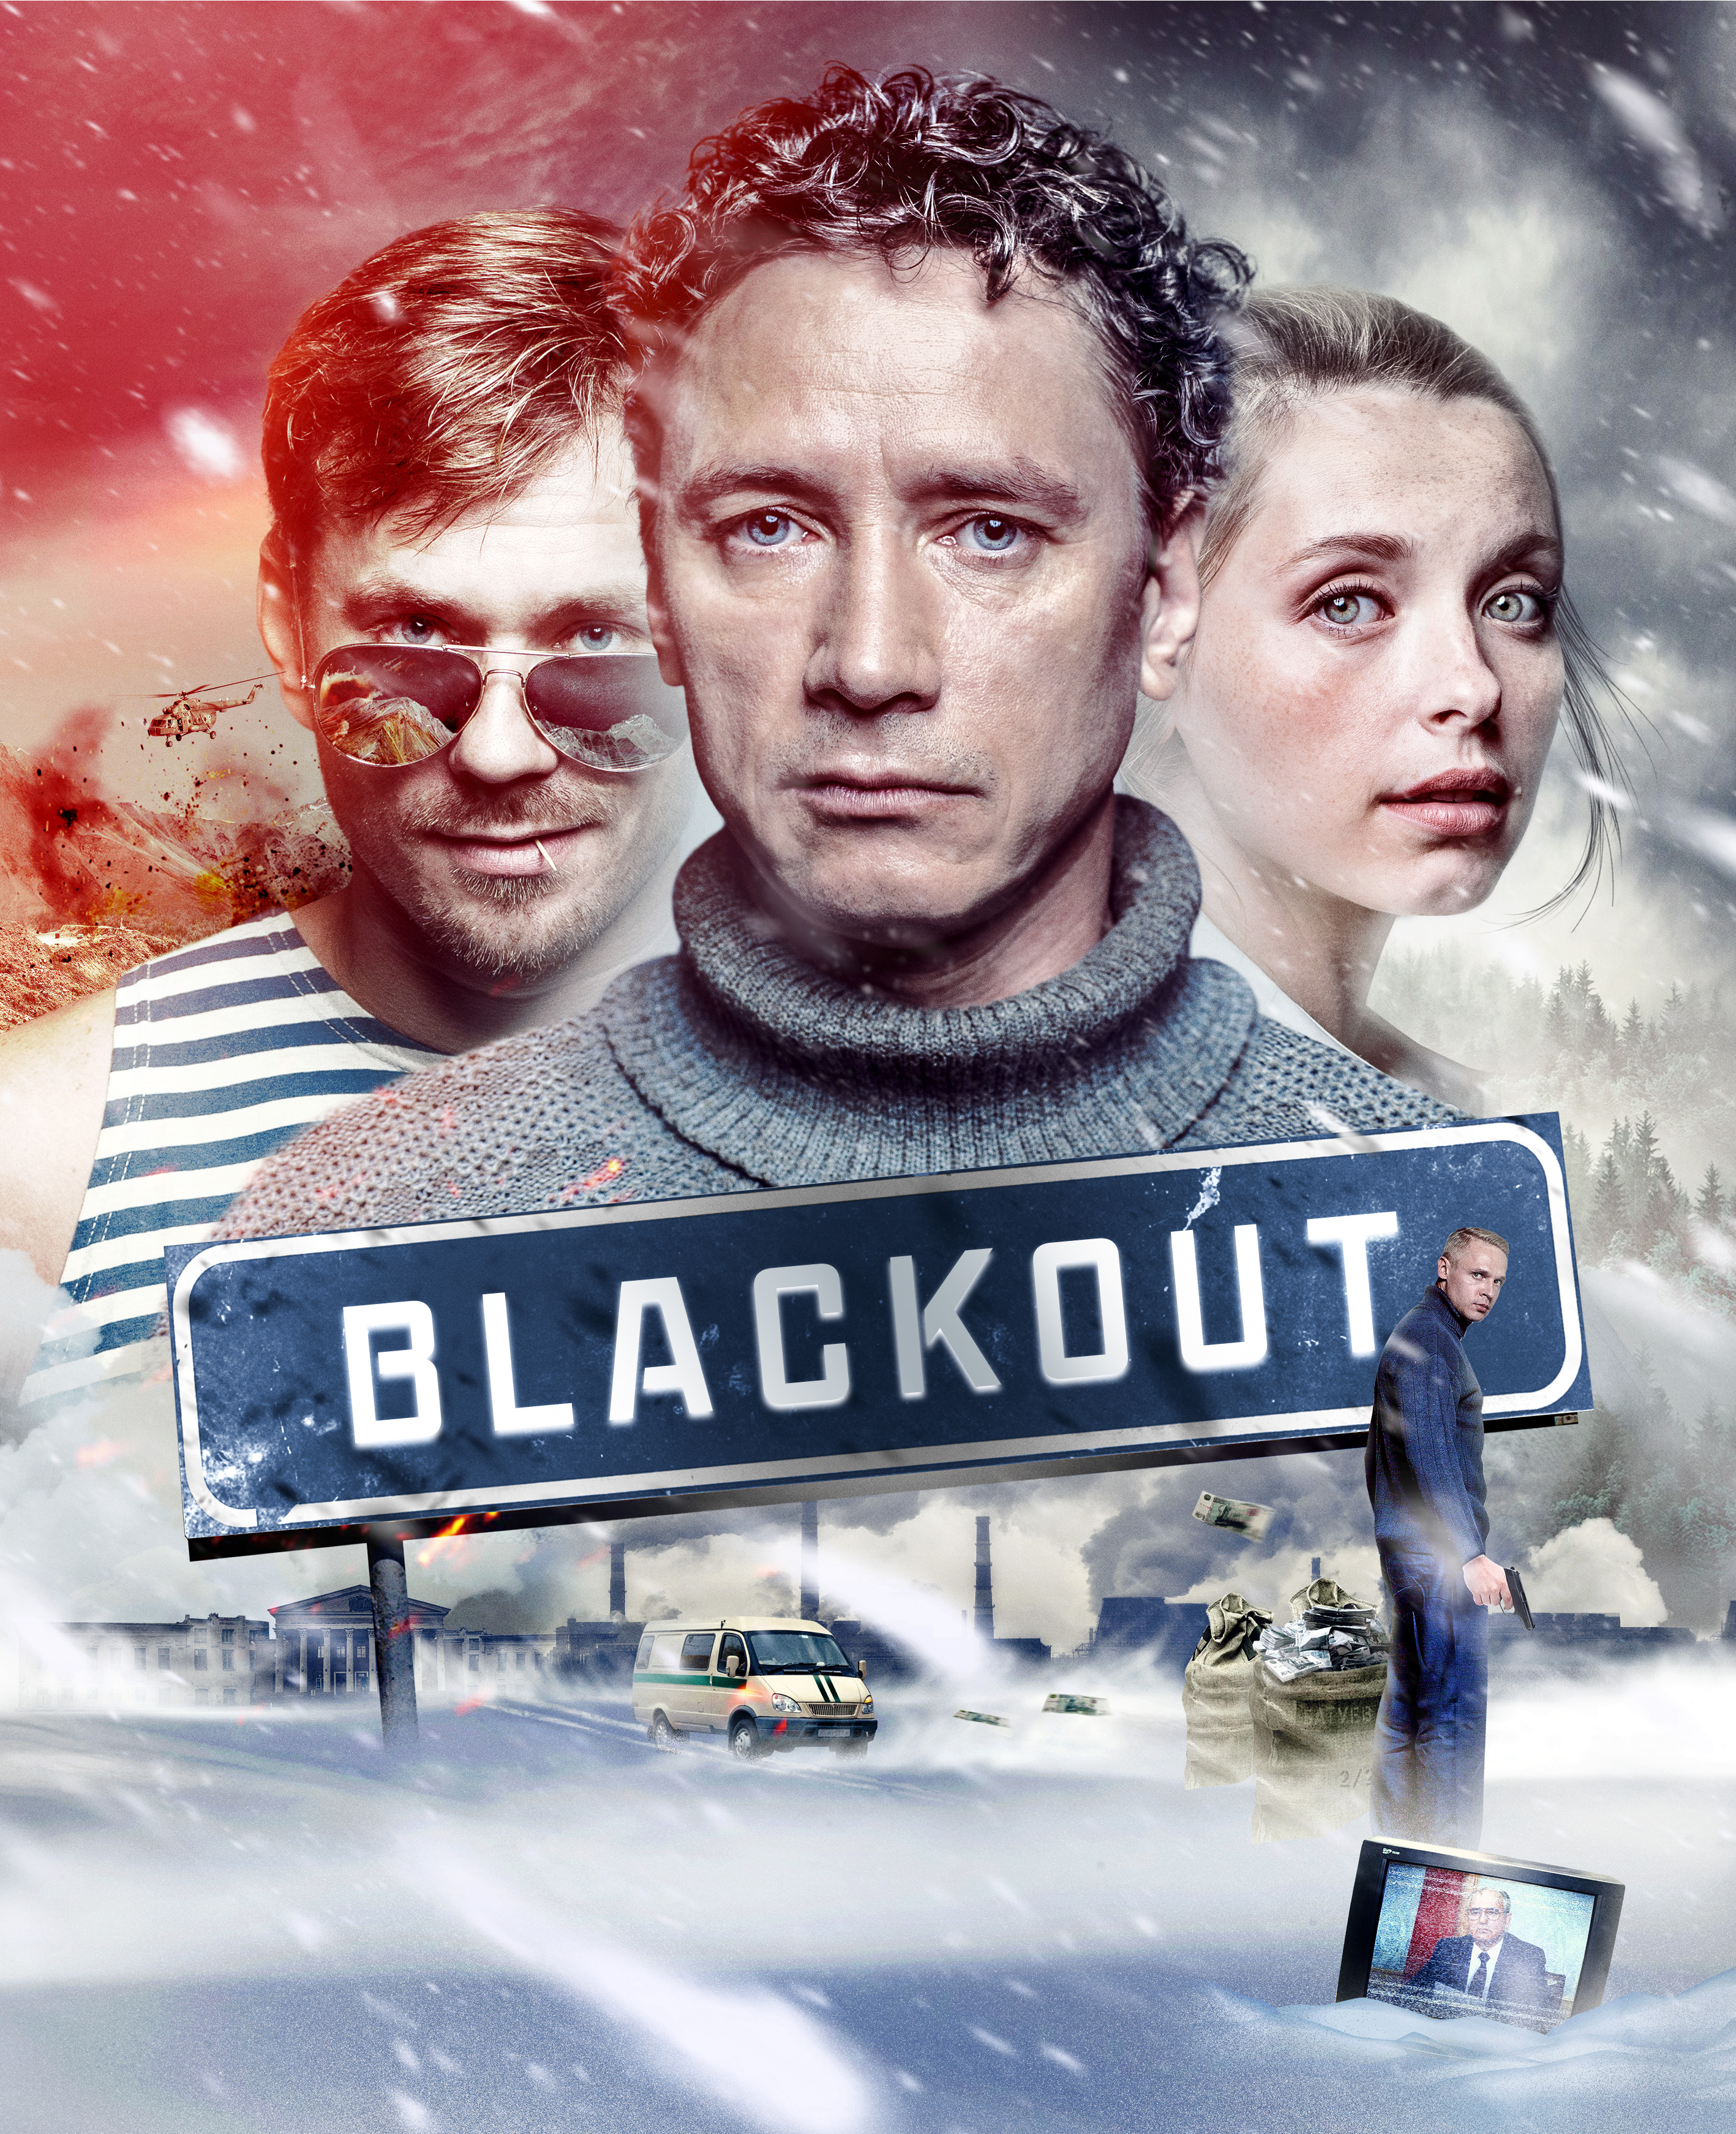 TV-SERIES BLACKOUT WON THE MAIN PRIZE OF THE SERIAL KILLER FESTIVAL